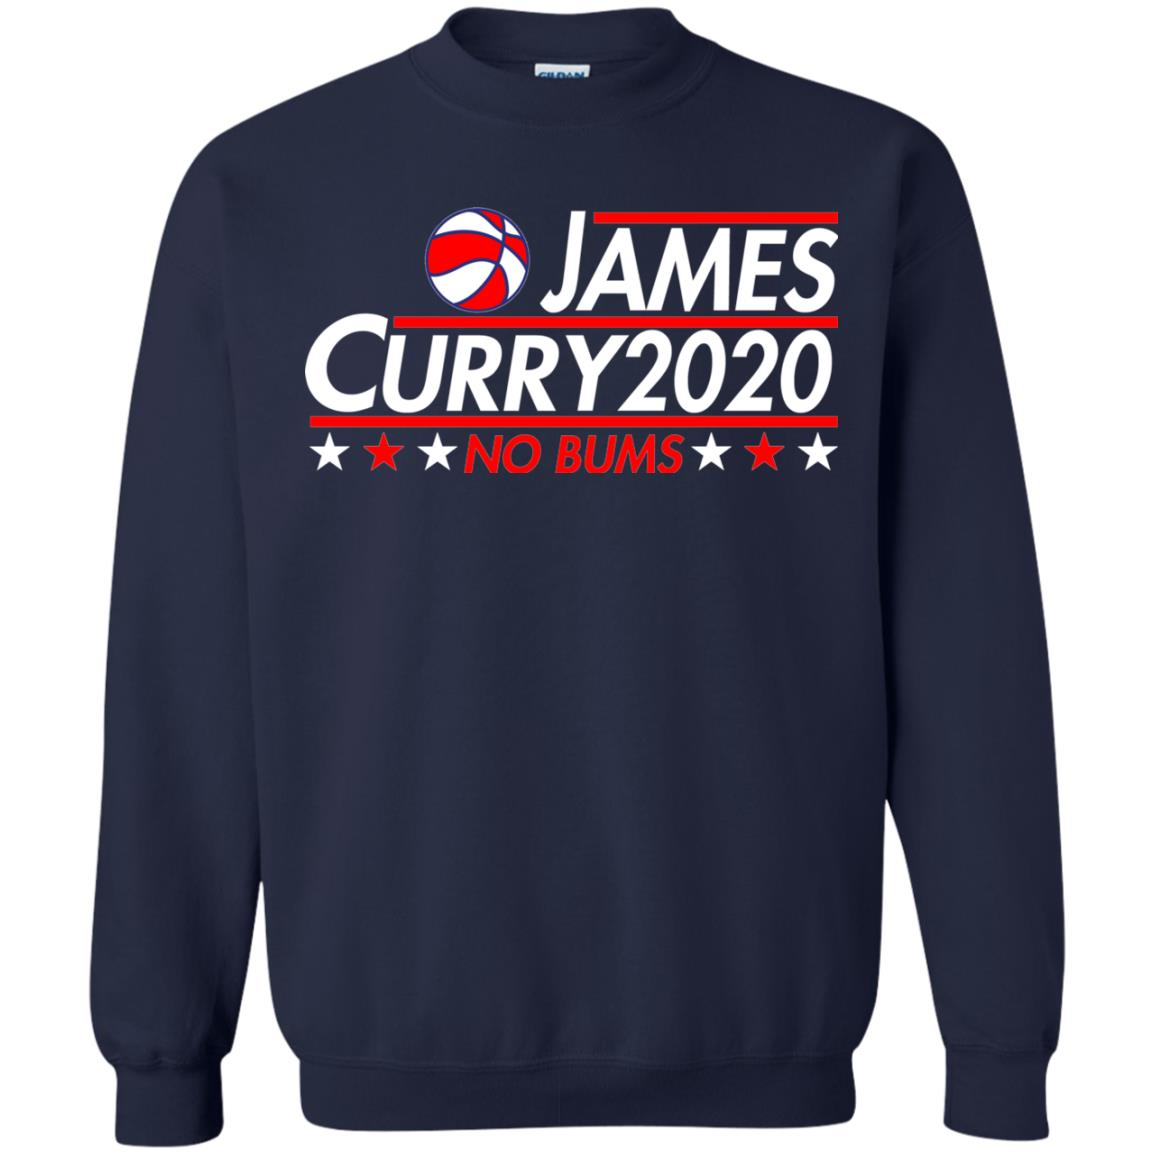 image 2173 - James Curry 2020 shirt No Bums: James & Curry for President